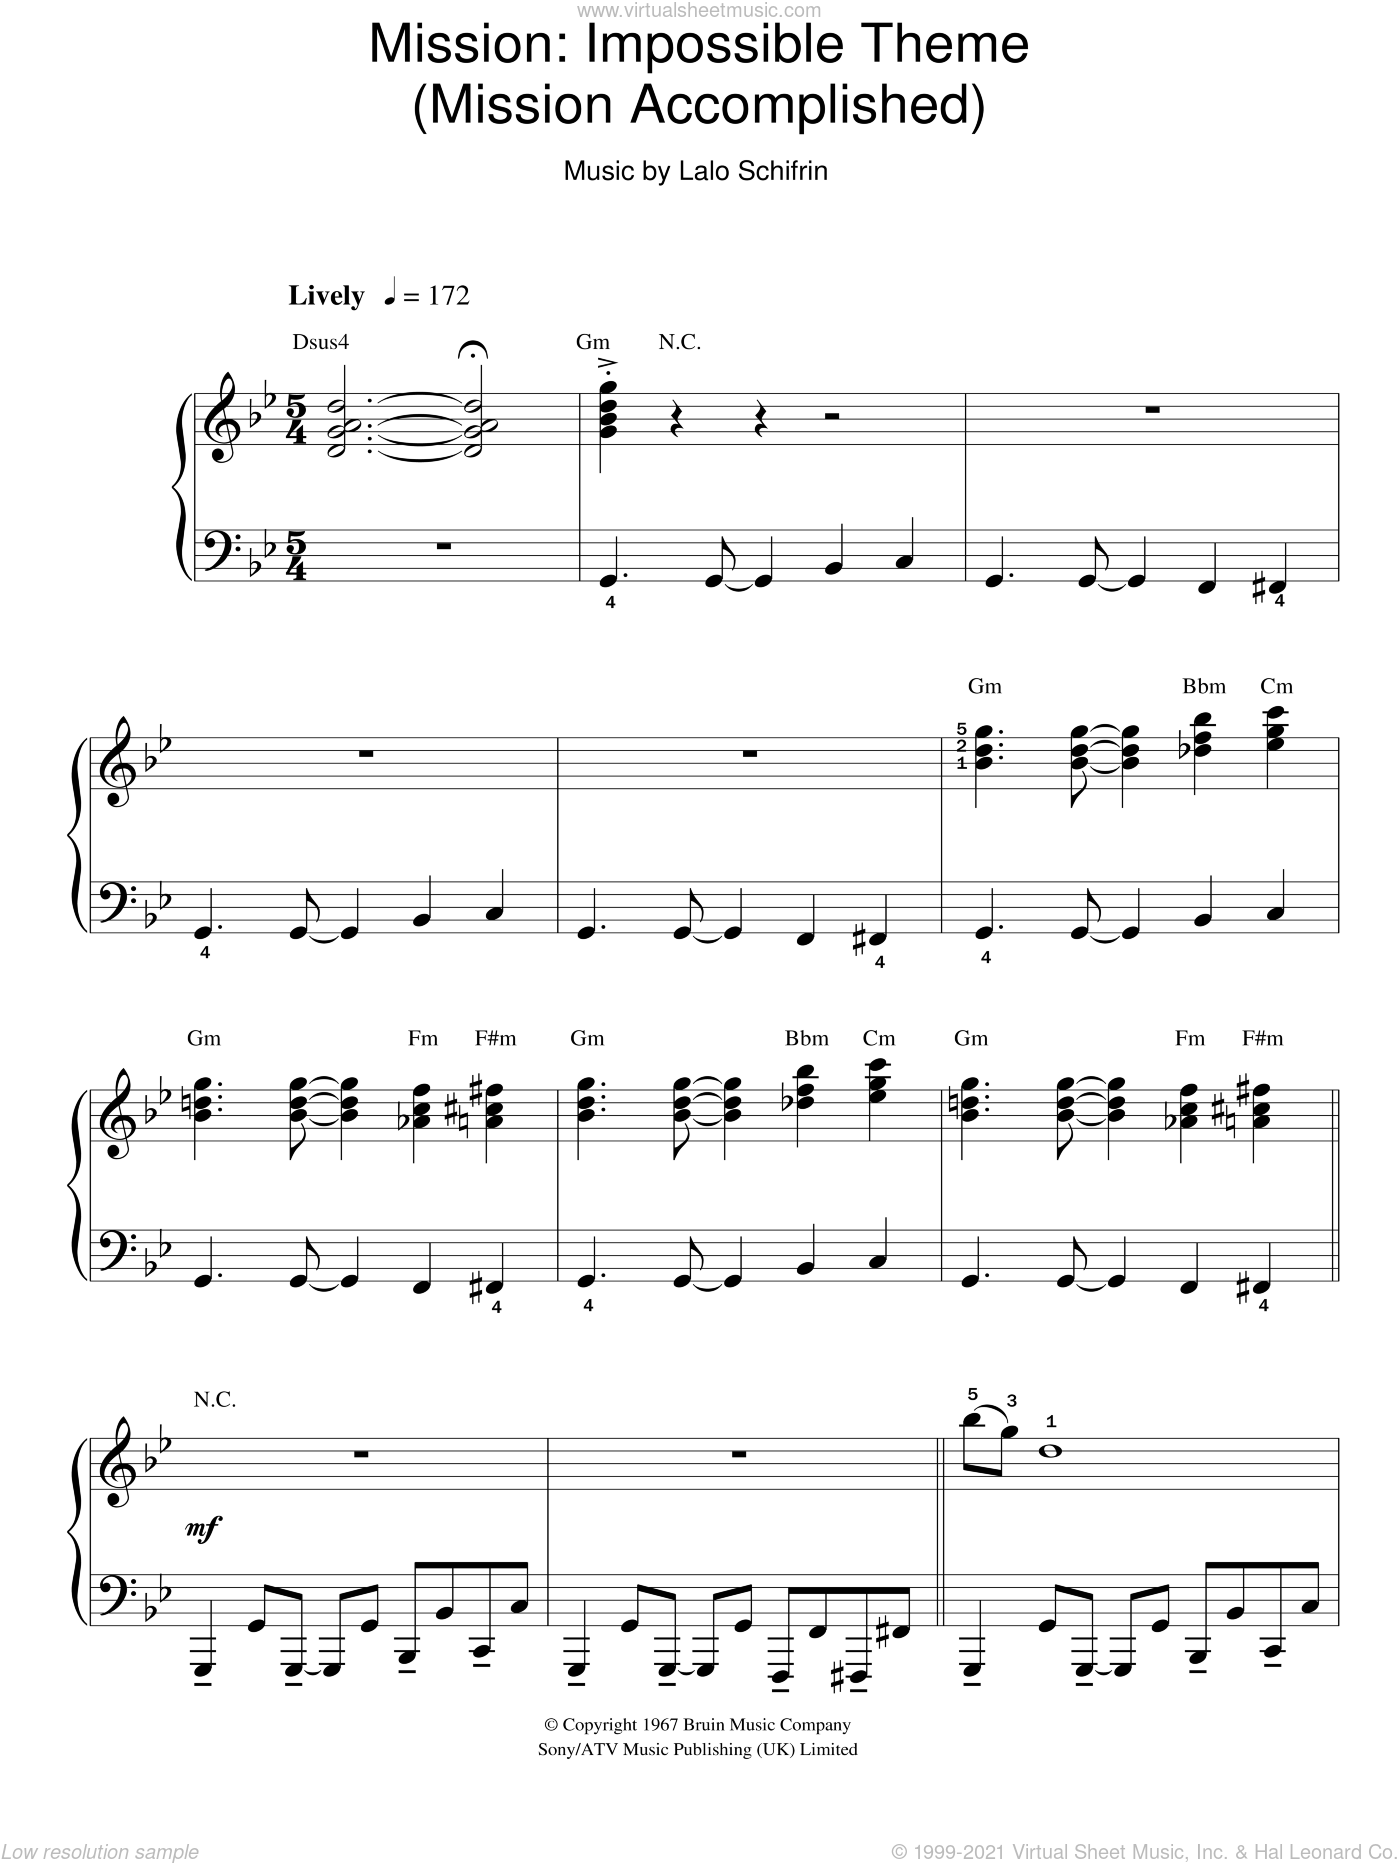 Mission: Impossible Theme sheet music for piano solo by Lalo Schifrin, easy. Score Image Preview.